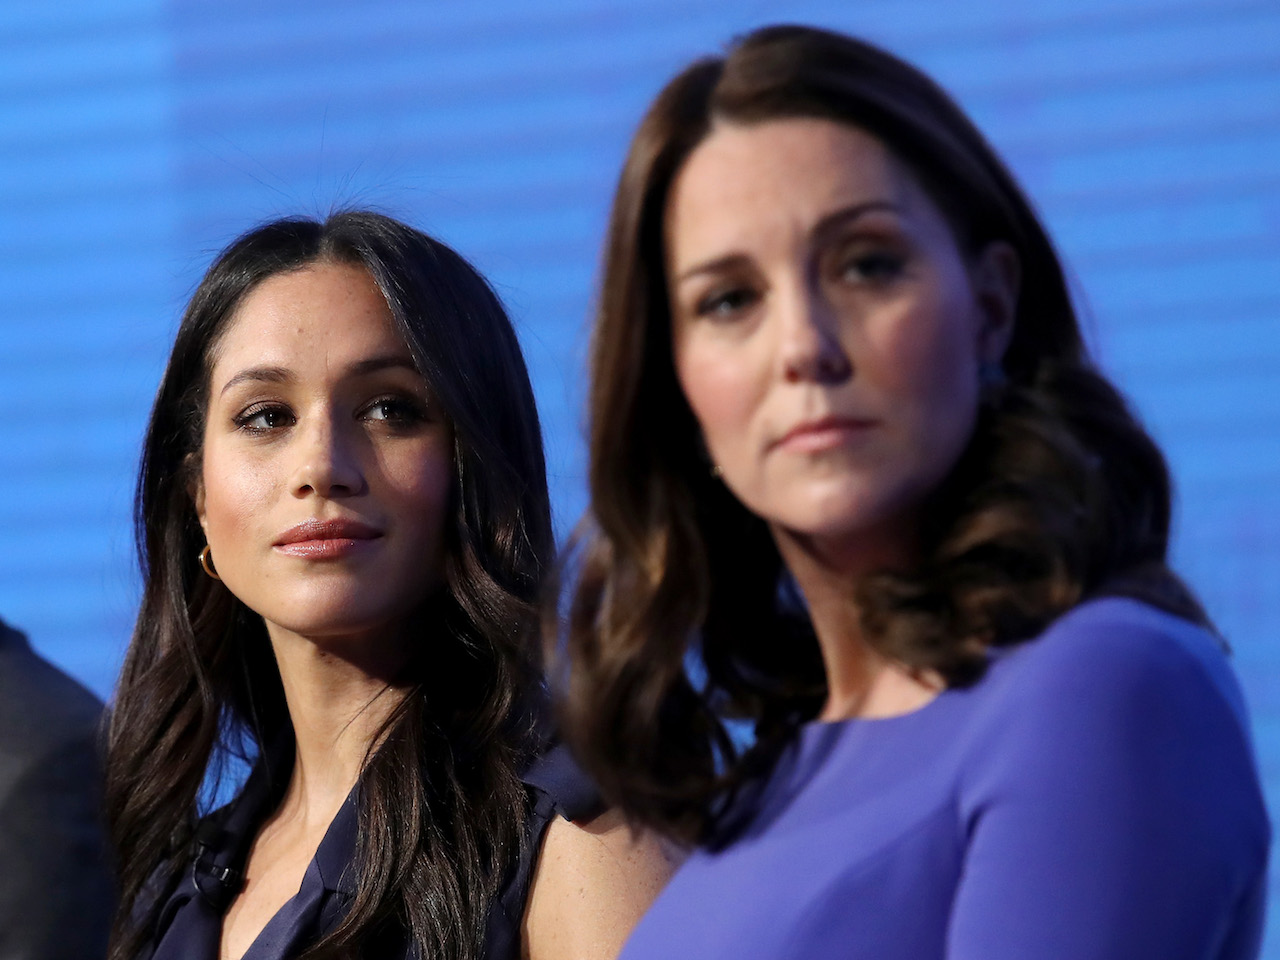 Meghan Markle and Kate Middleton: are they feuding?